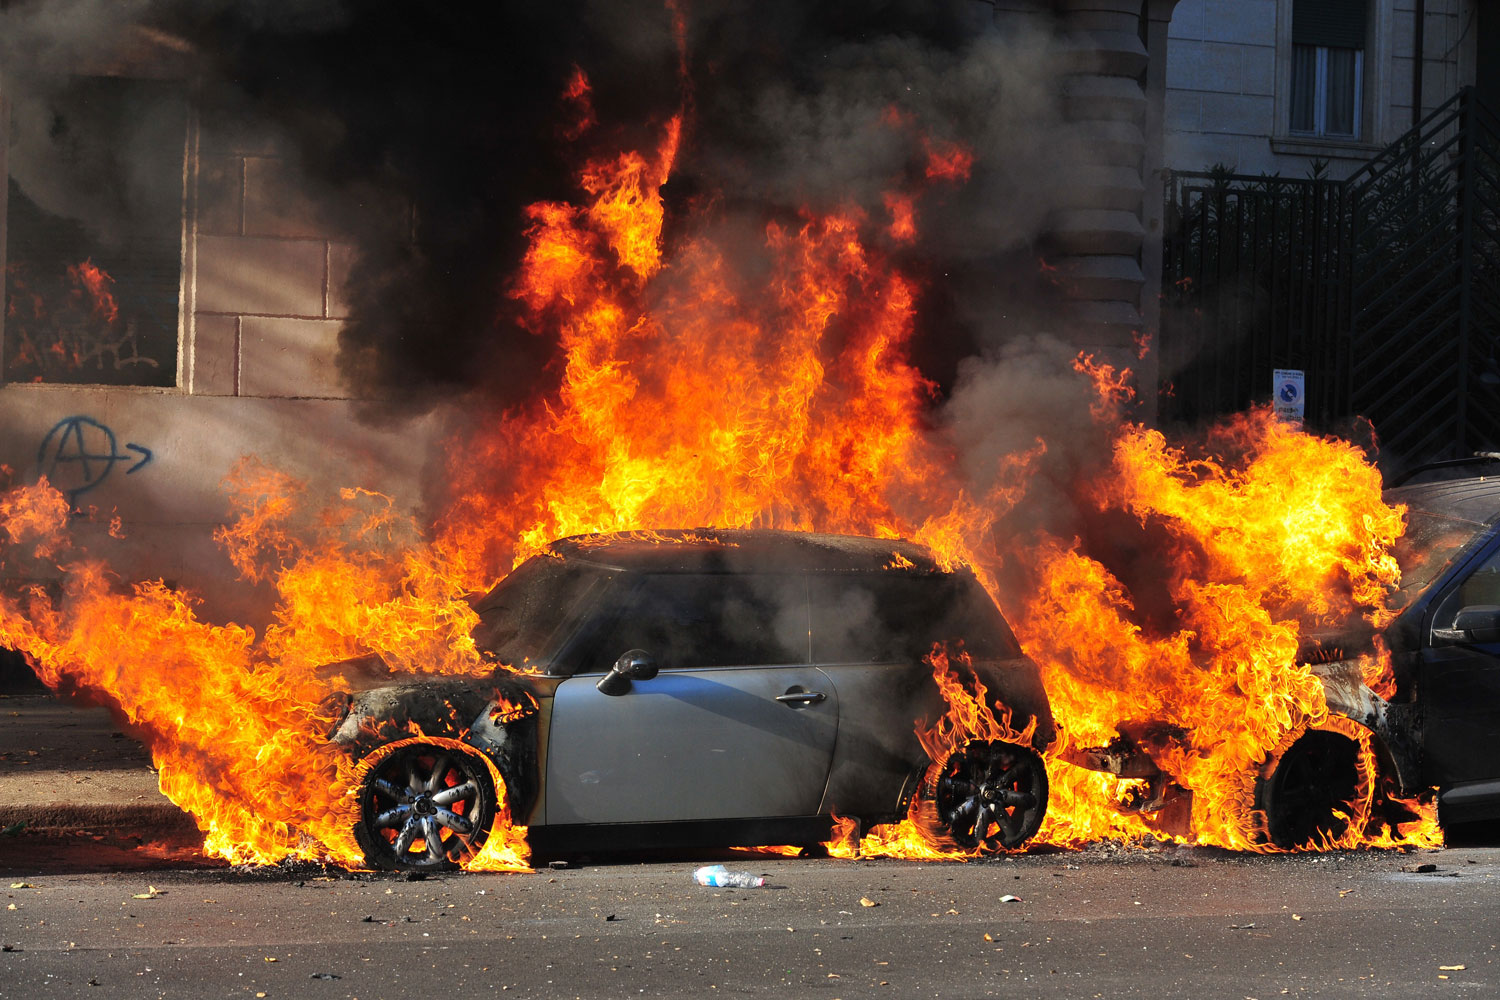 October 15, 2011. A car burns during a demonstration in Rome. Tens of thousands marched in Rome today as part of a global day of protests inspired by the  Occupy Wall Street  and  Indignant  movements, with the Italian capital under a security lockdown.